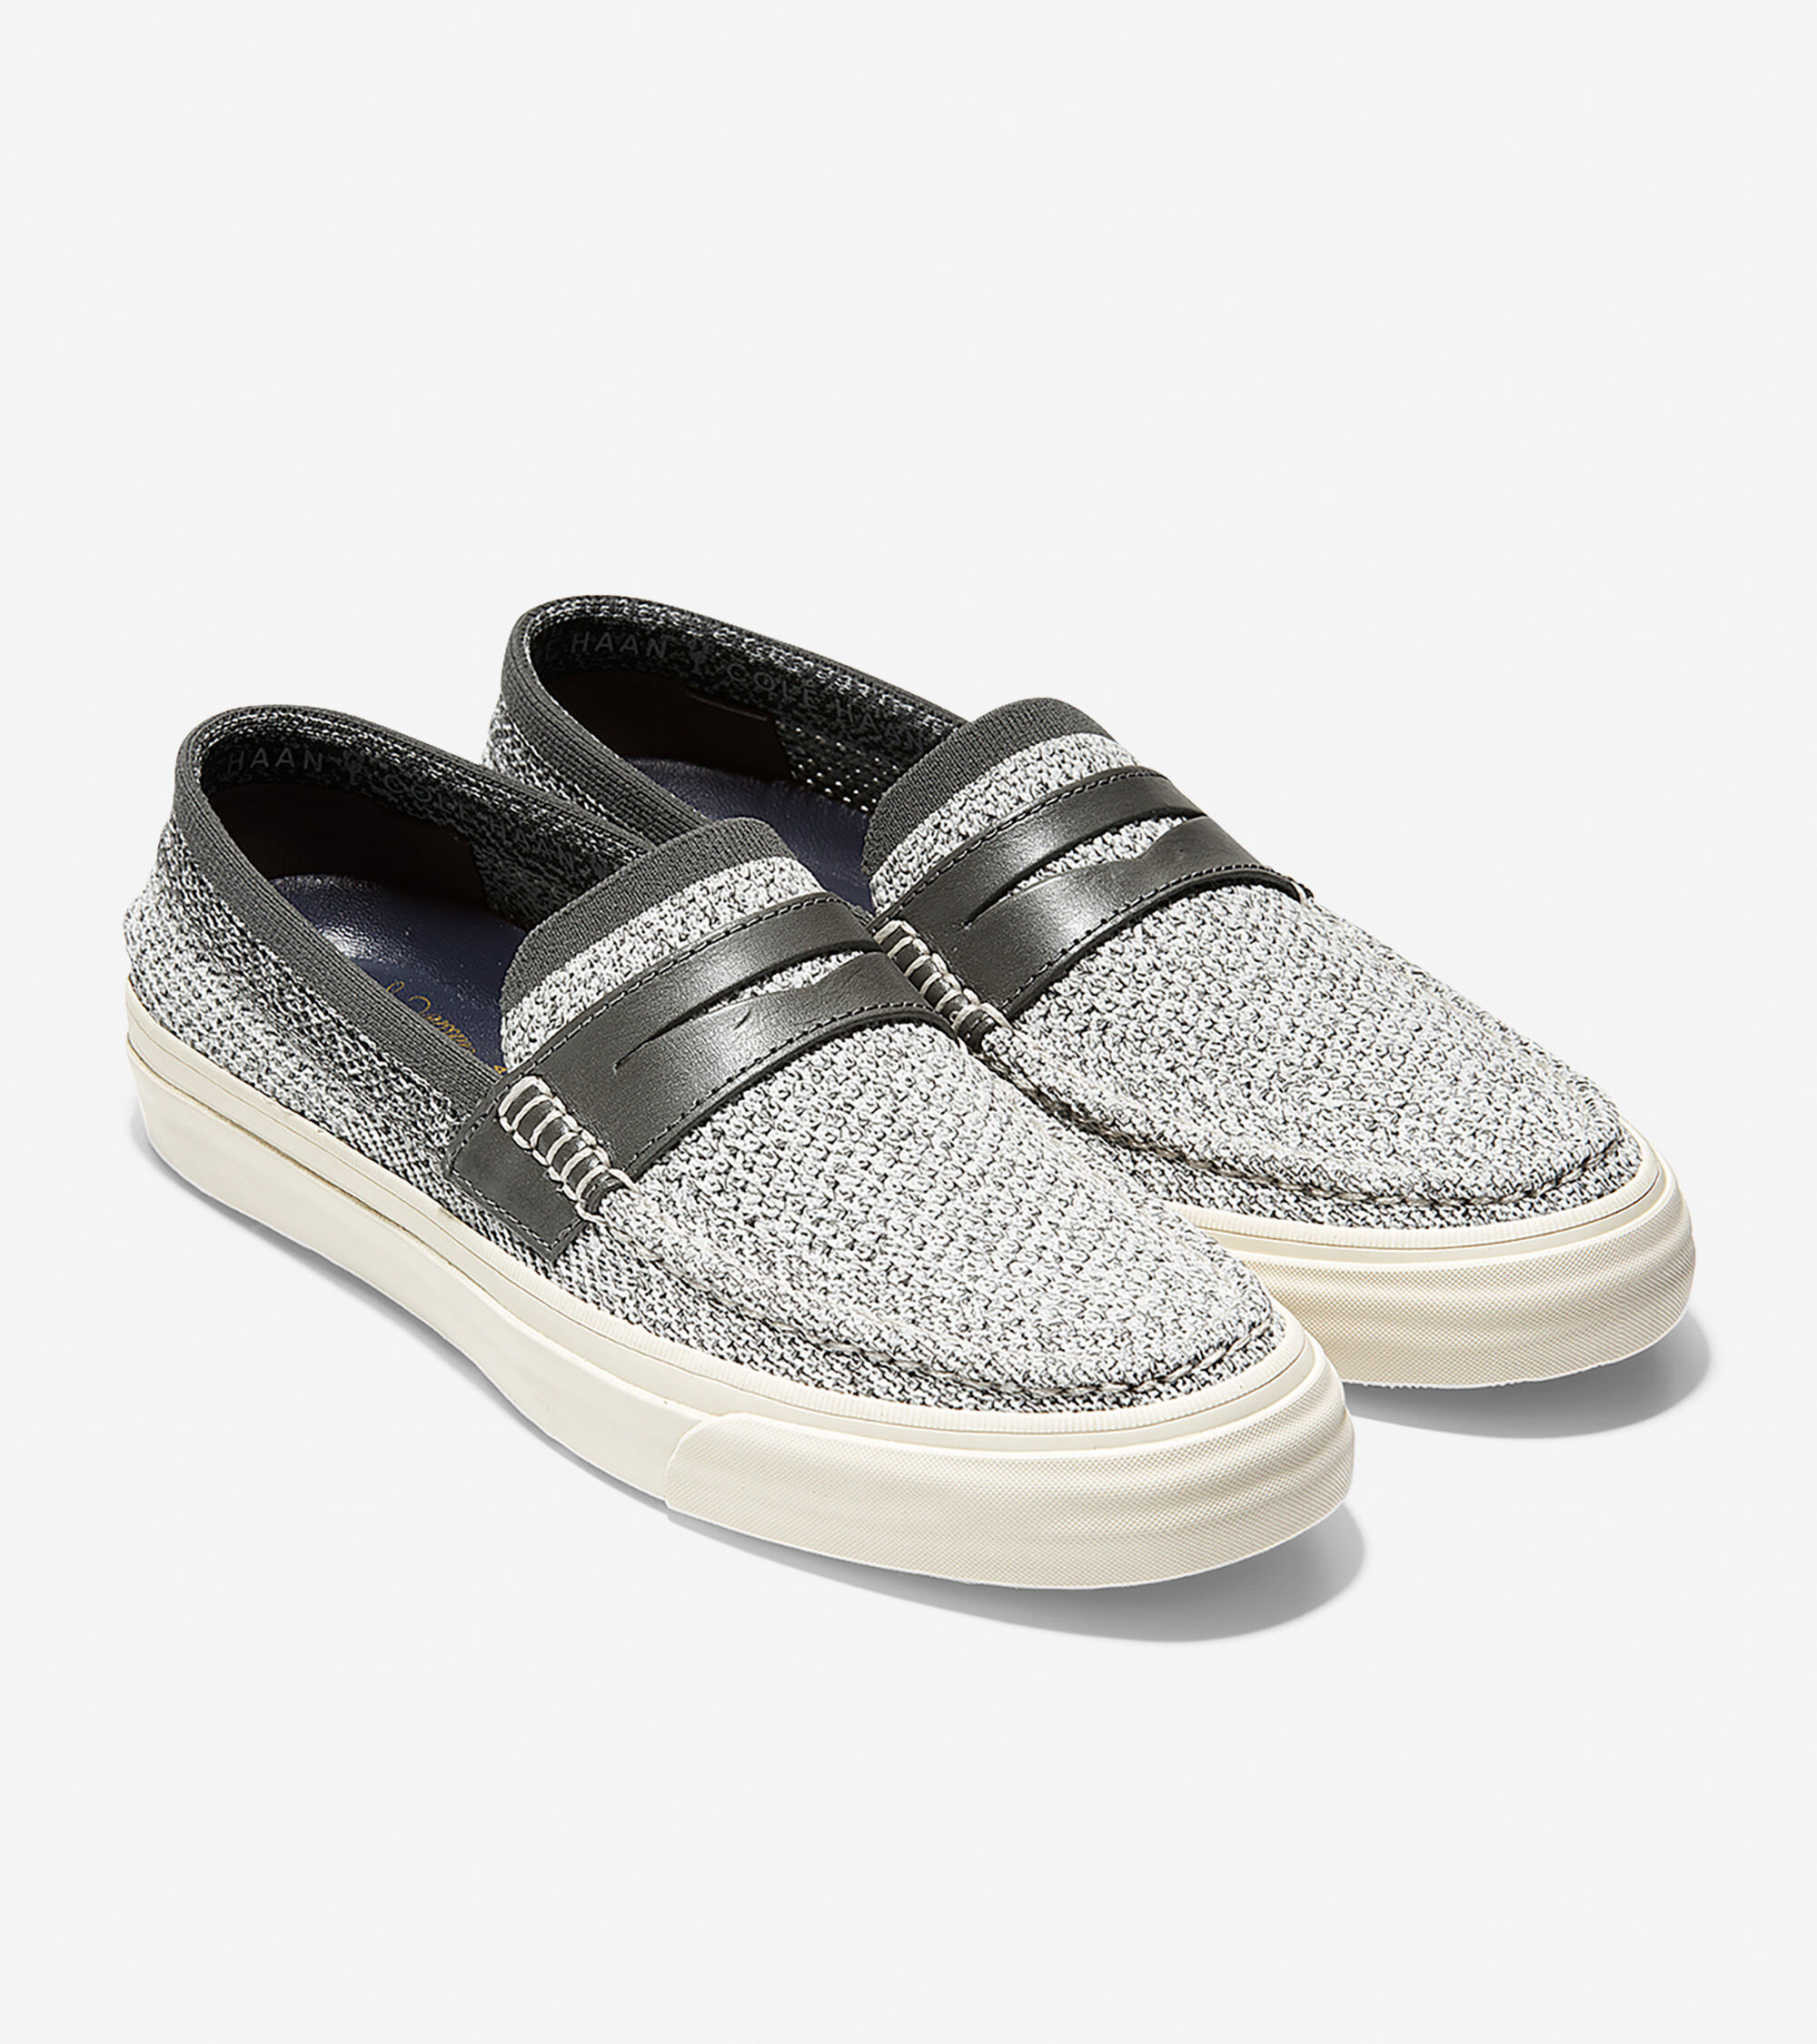 Men's Pinch Weekender LX Loafer with Stitchlite™ visa payment for sale official site sale online clearance browse outlet footlocker pictures official cheap price VWKlVmb